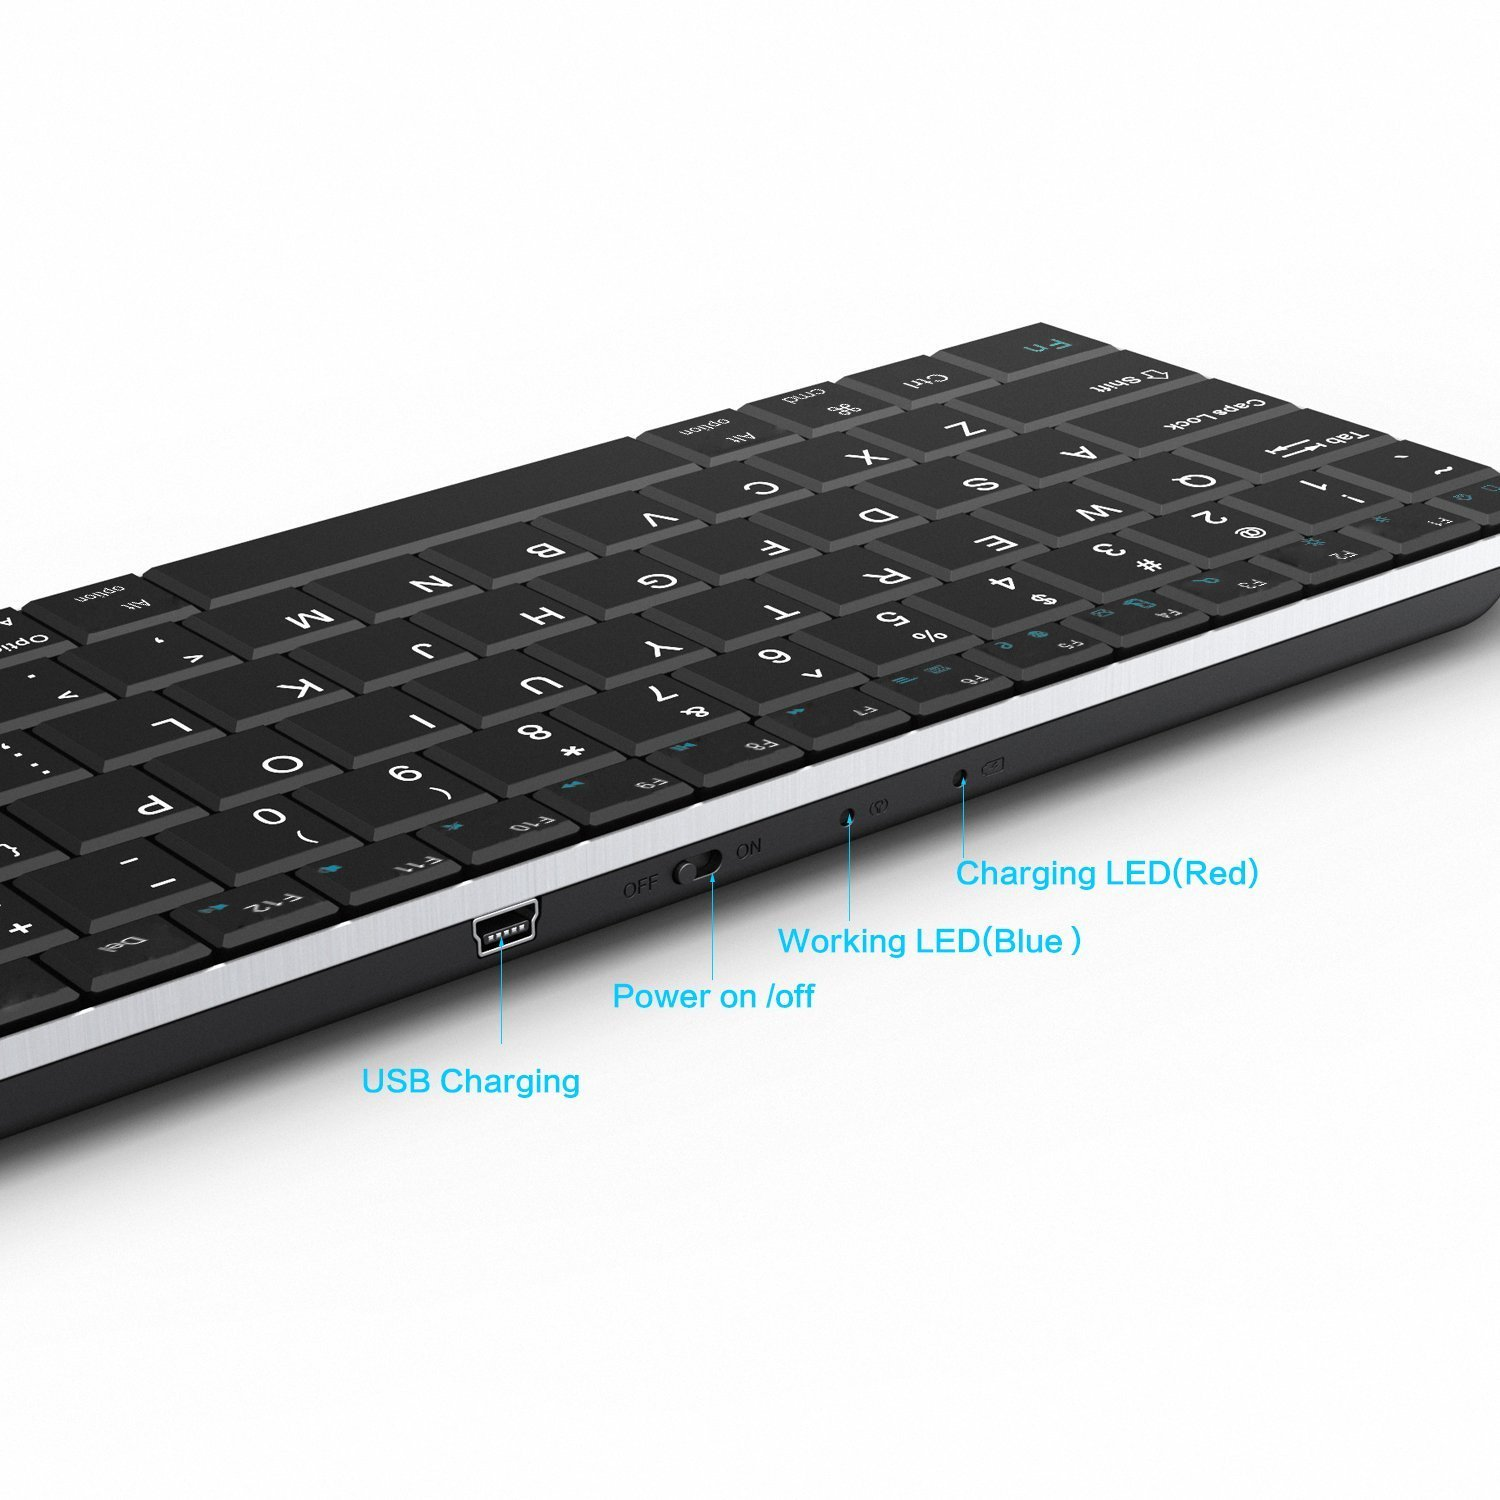 Rii i9 Bluetooth 3.0 Ultra Slim Wireless Rechargable Keyboard With Stainless Stand Cover For iOS/Android and Windows PC/Laptop/Notebook/MacBook/Samsung Galaxy Tablet/iPhone/iPad/Microsoft Surface by Rii (Image #2)